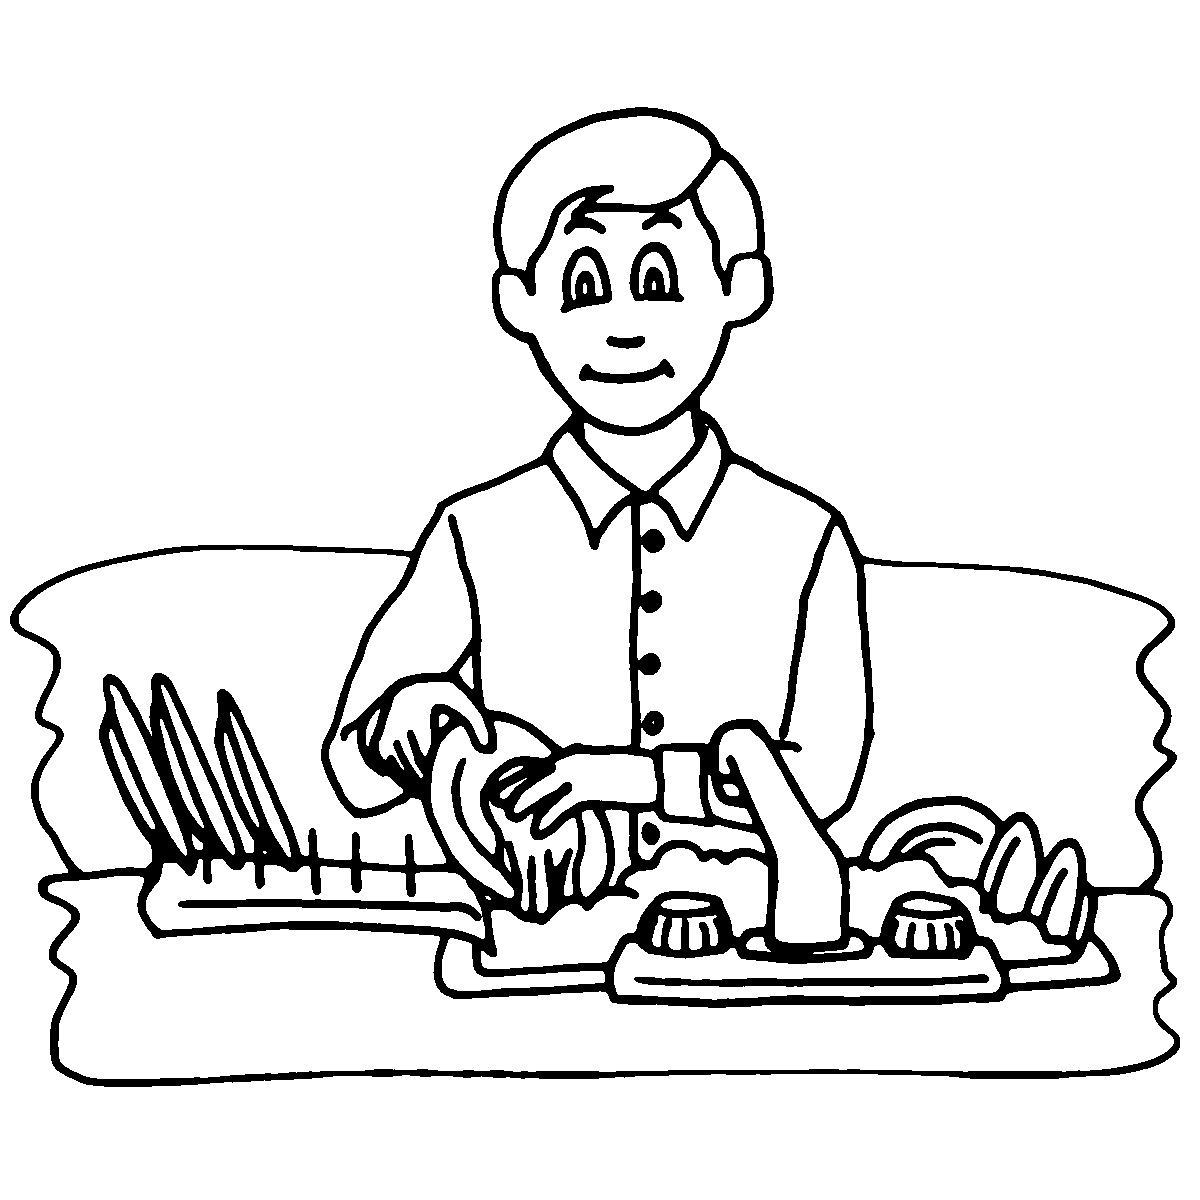 jpg black and white download Doing dishes wikiclipart . Chores clipart black and white.